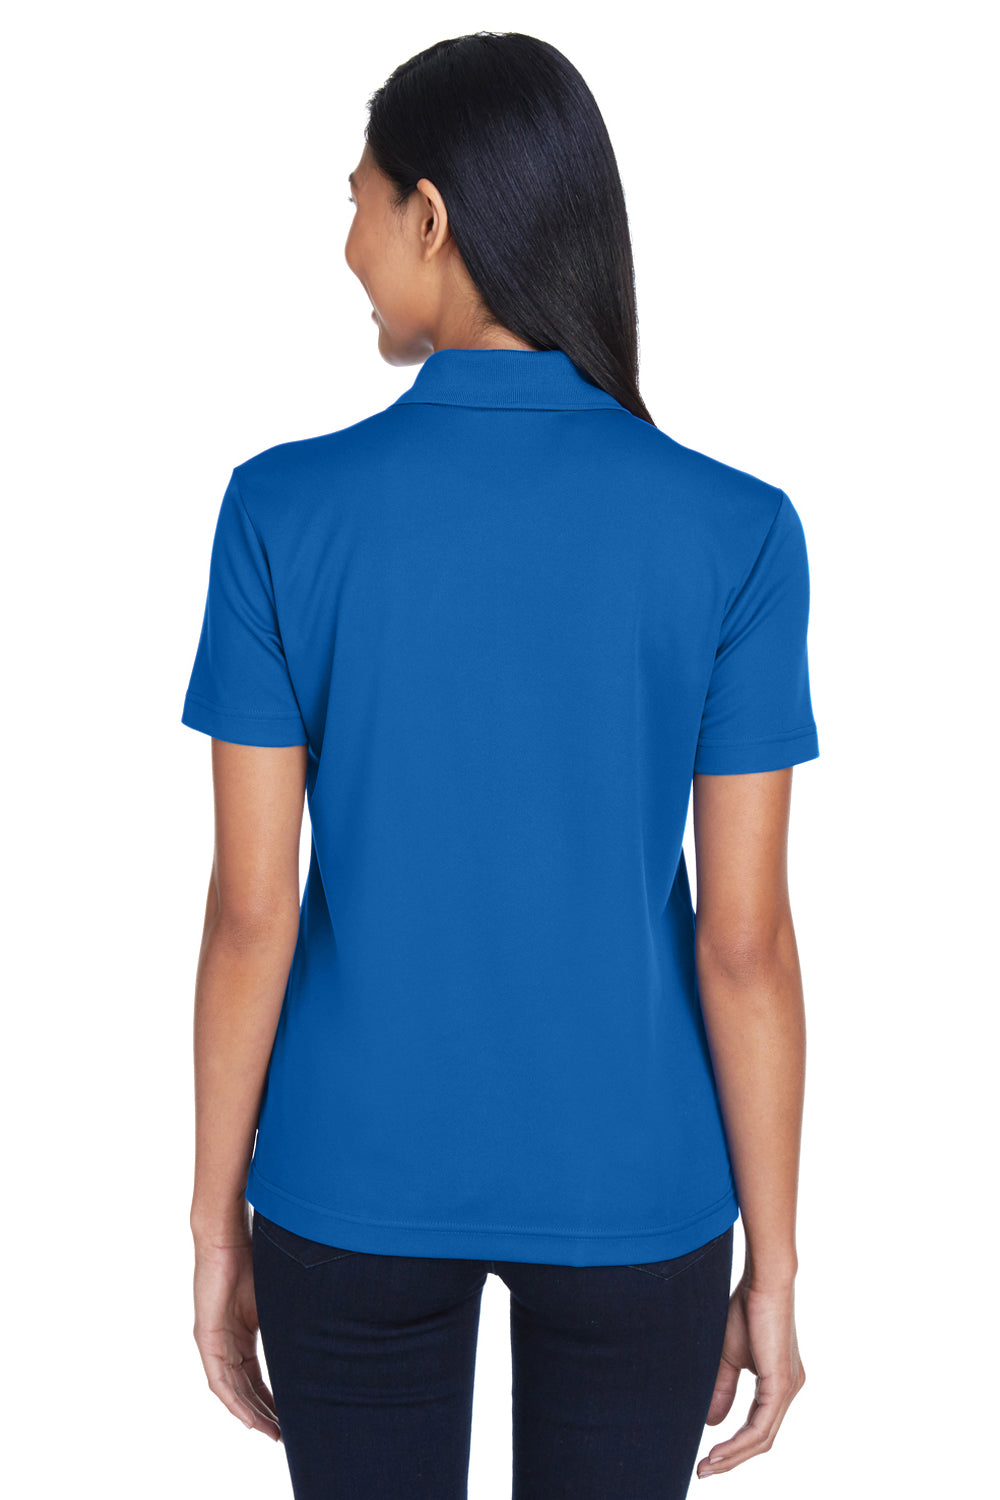 Core 365 78181P Womens Origin Performance Moisture Wicking Short Sleeve Polo Shirt w/ Pocket Royal Blue Back